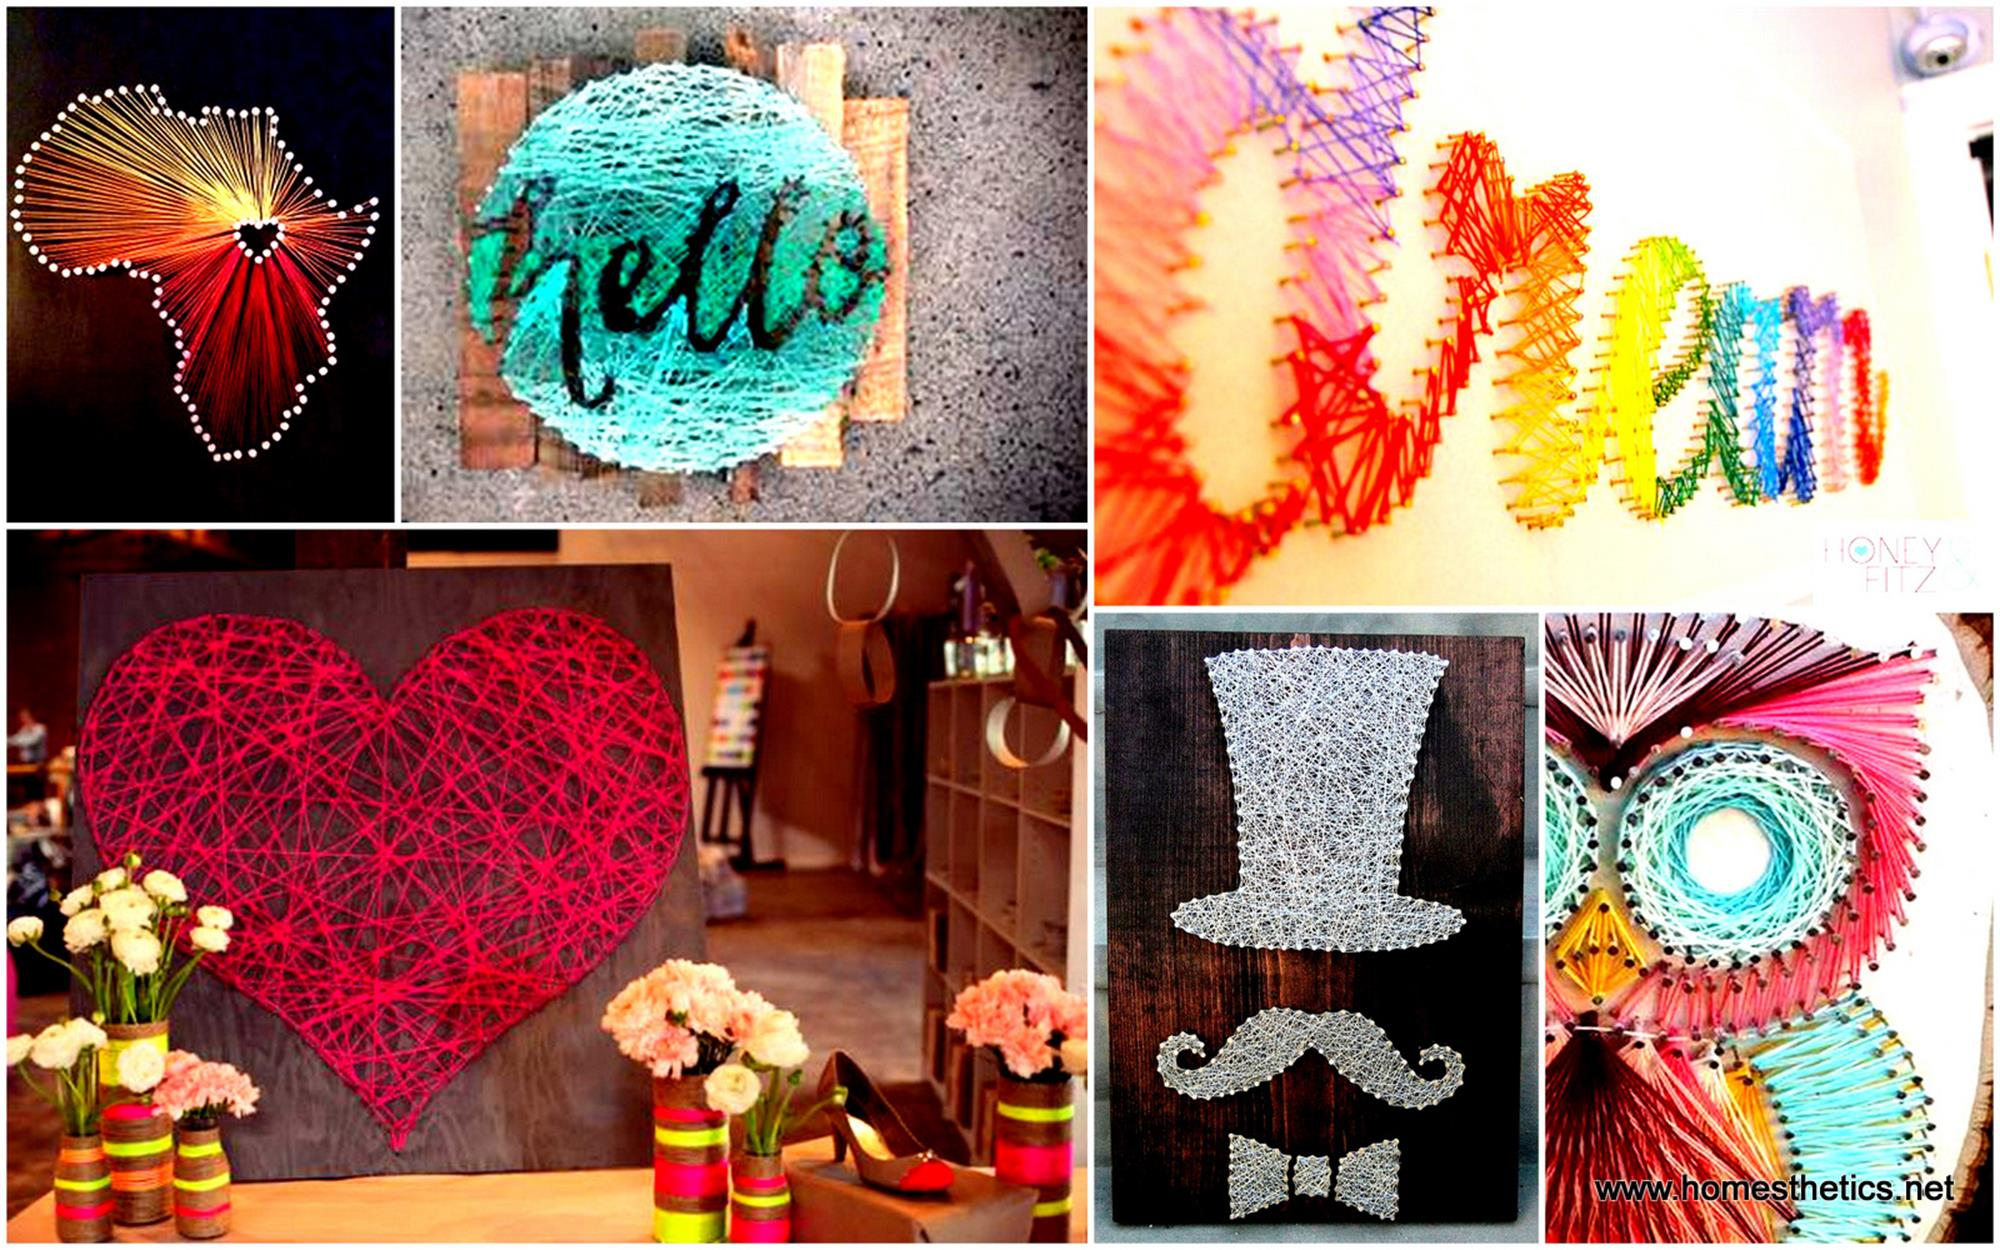 Creative Homemade Crafts for House Decorations Ideas 26